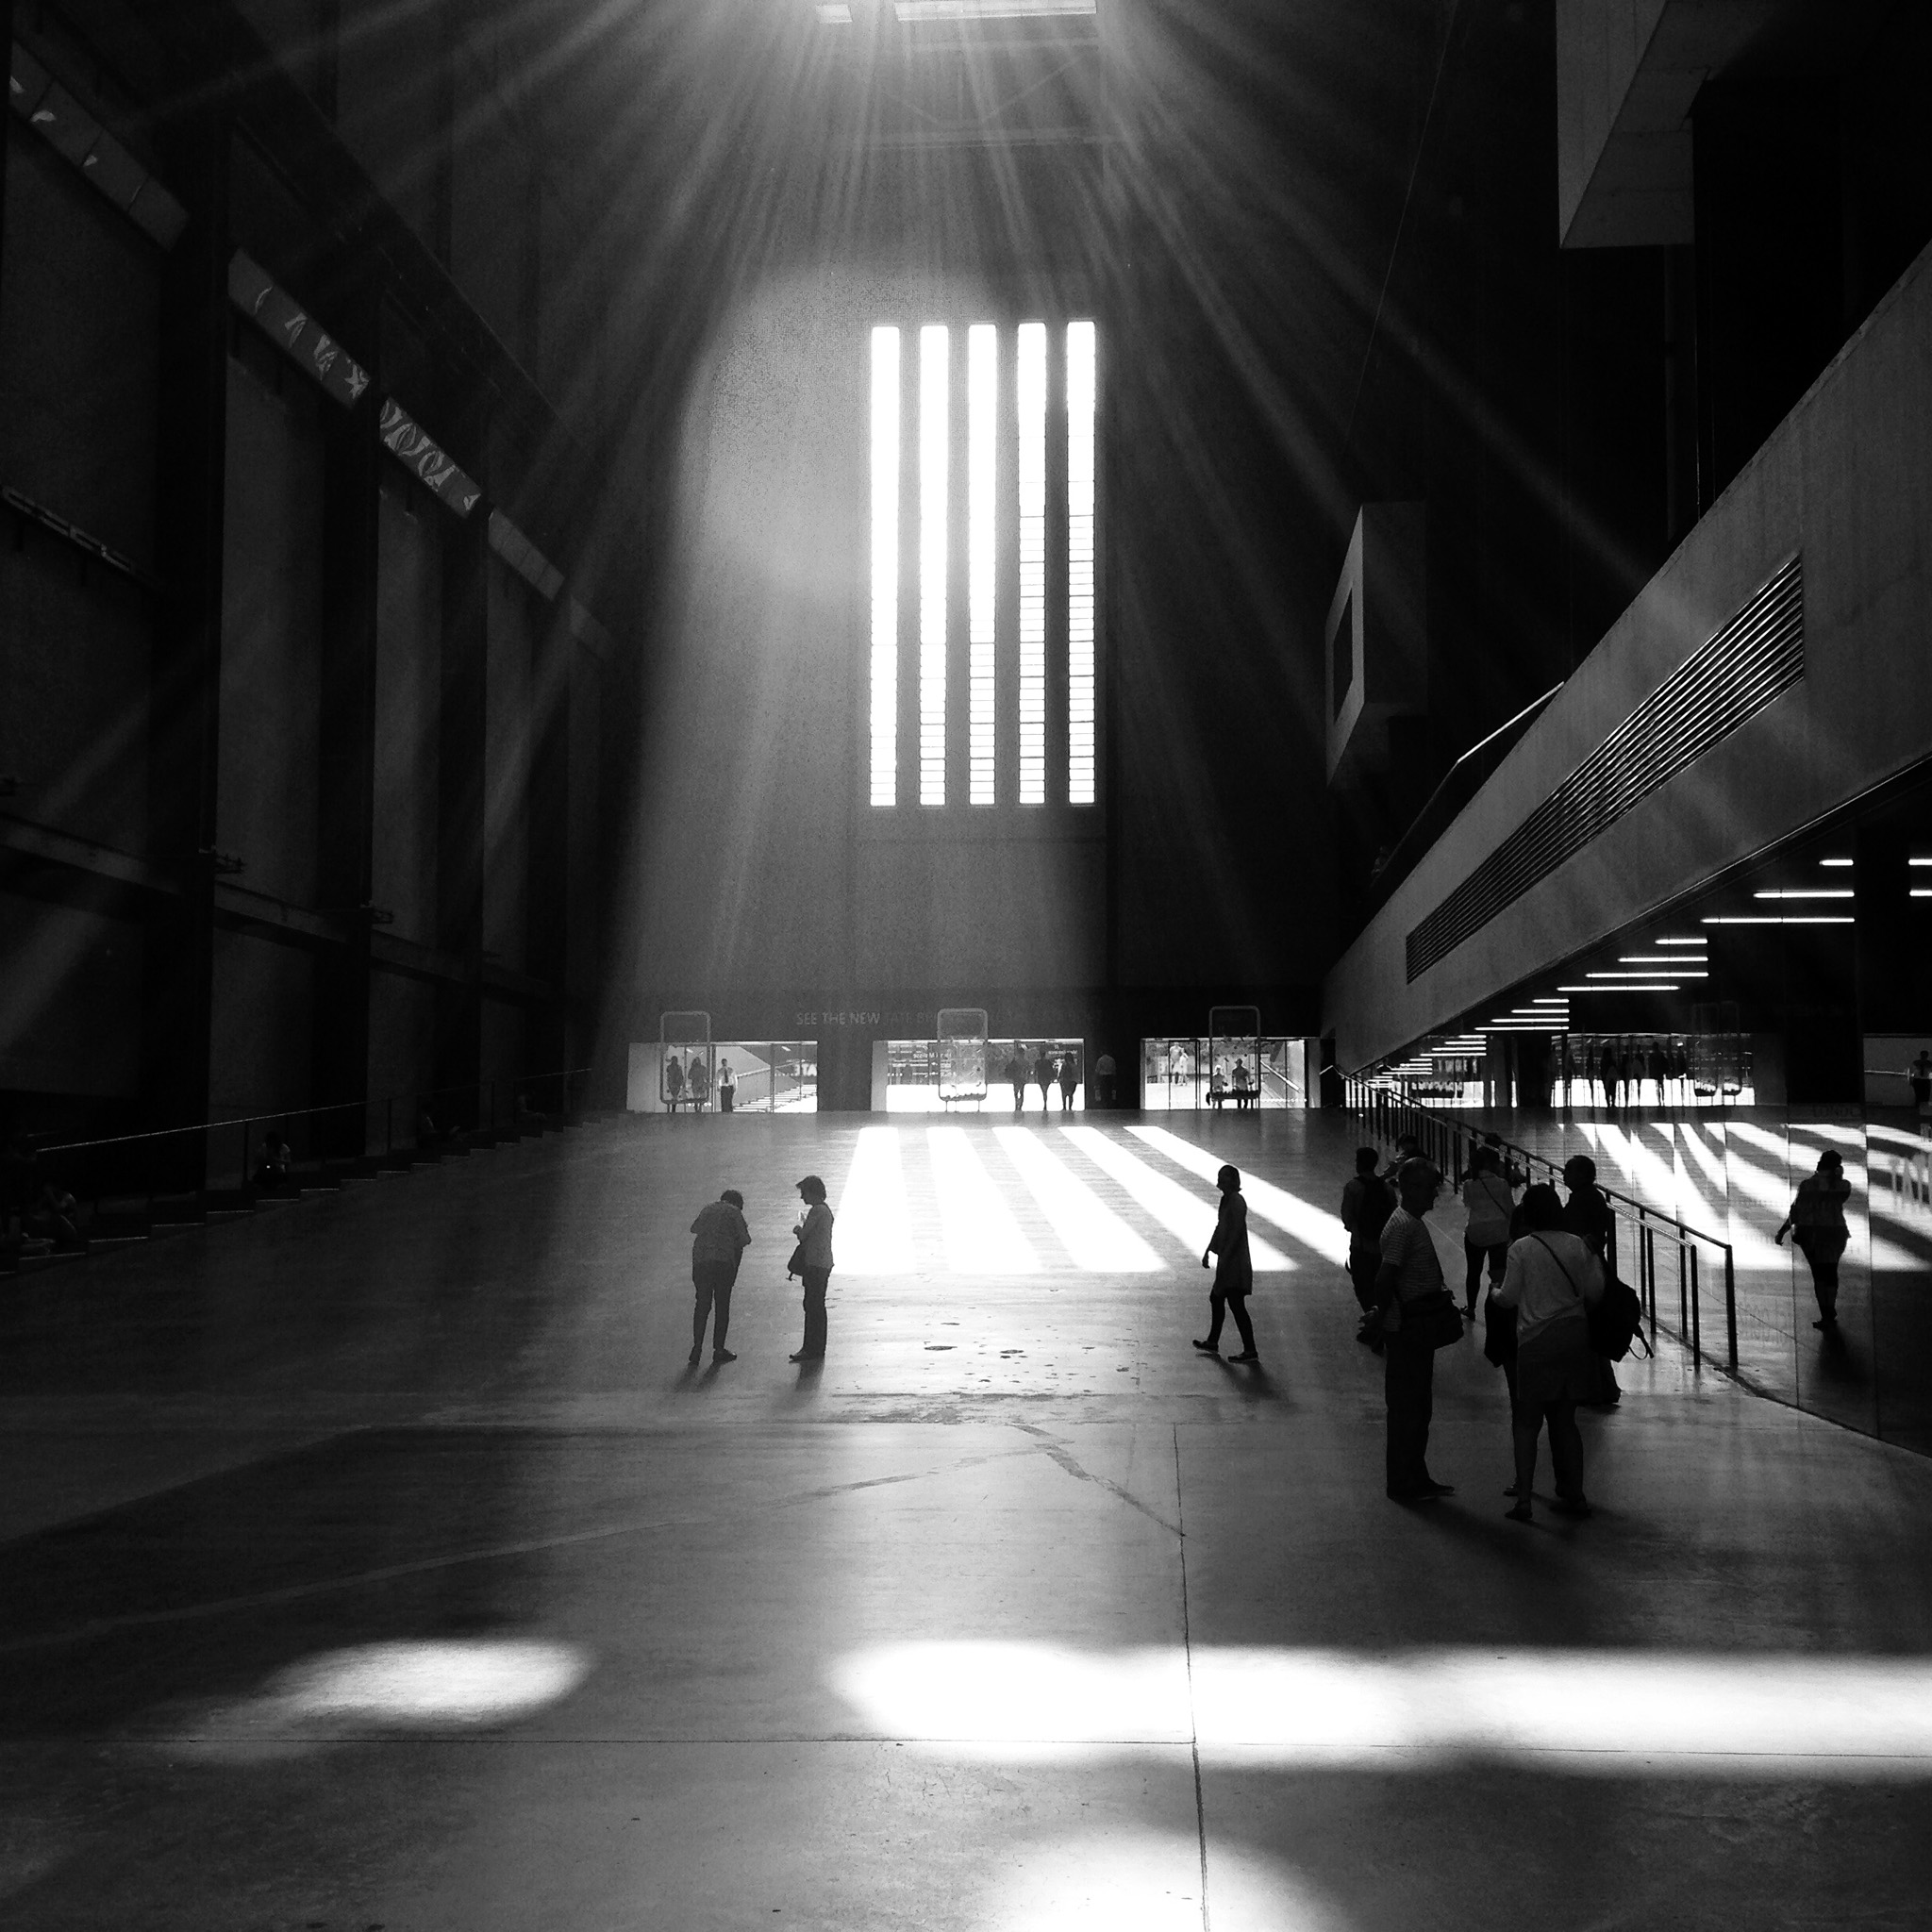 Resultado de imagen de TATE GALLERY LONDON black and white